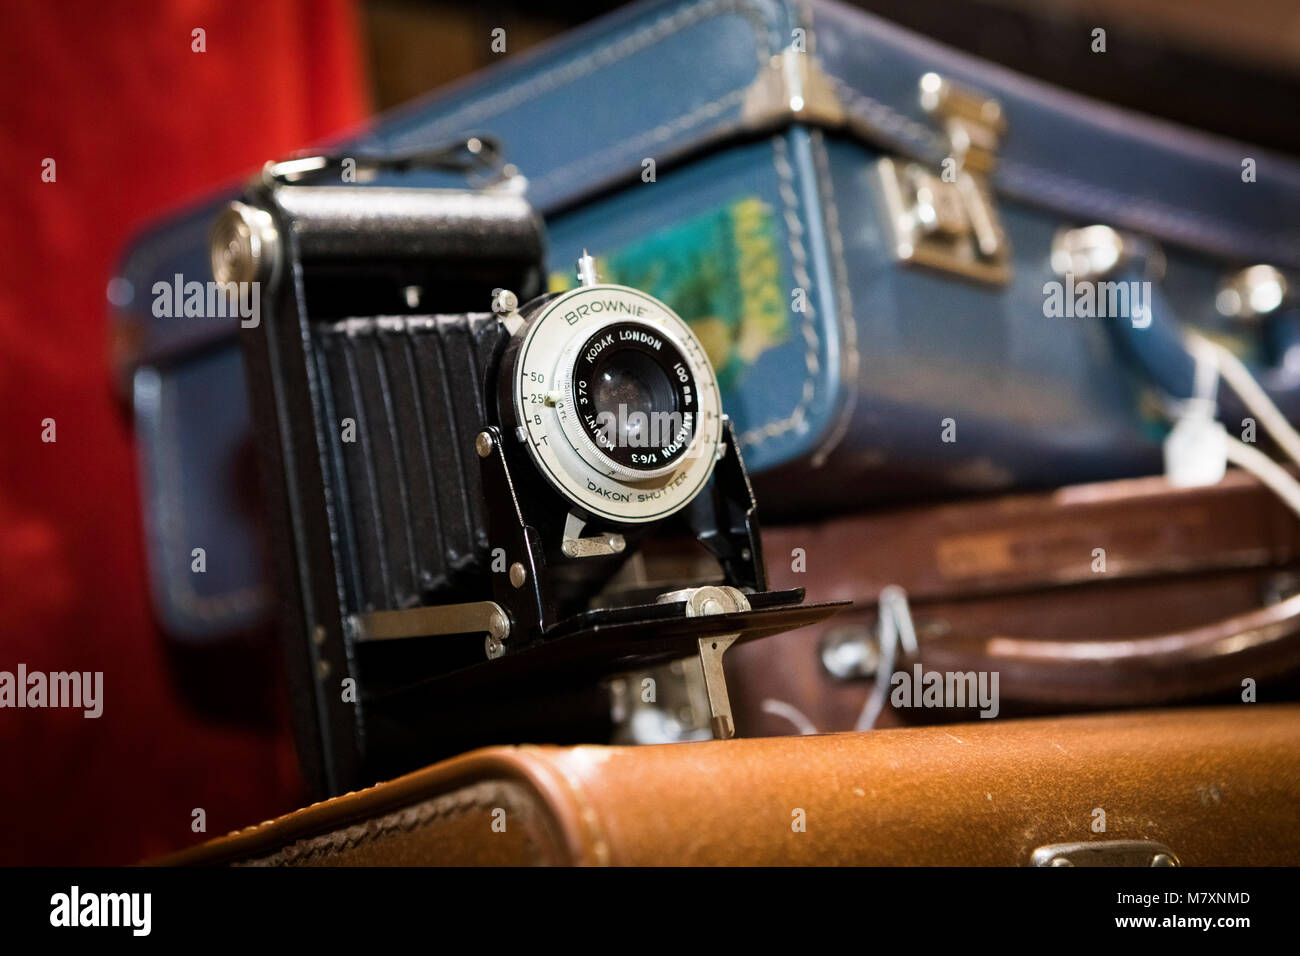 Vintage camera: Brownie, for sale with suitcases in vintage store. - Stock Image